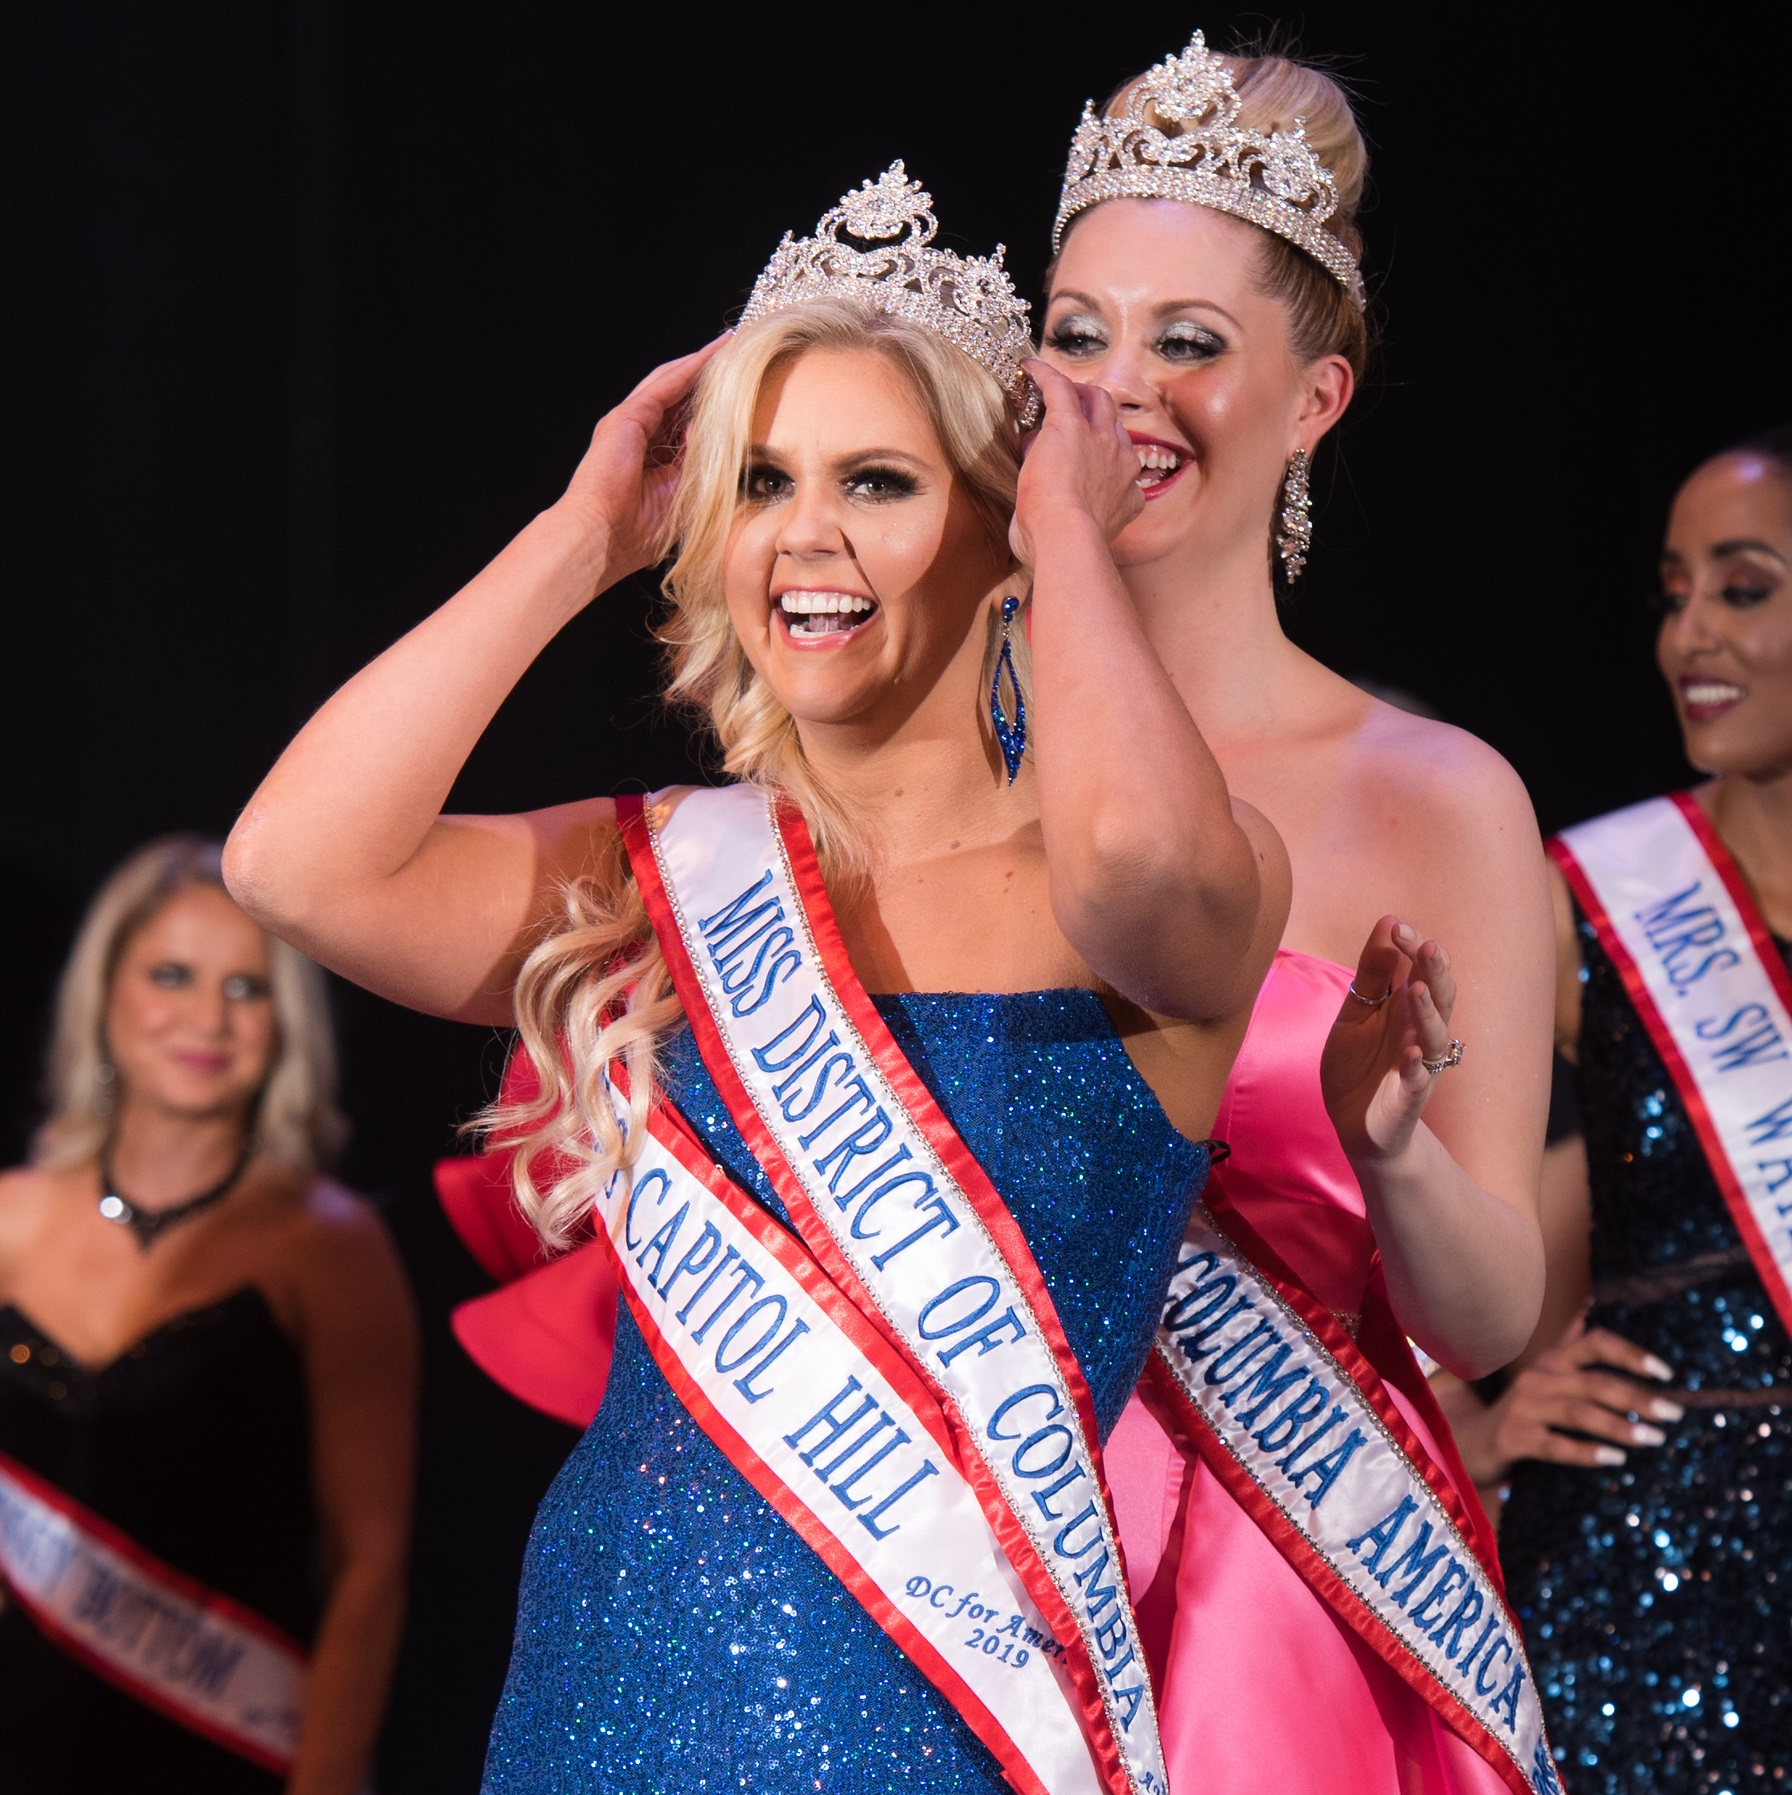 Miss DC for America 2019 is Megan Eunpu